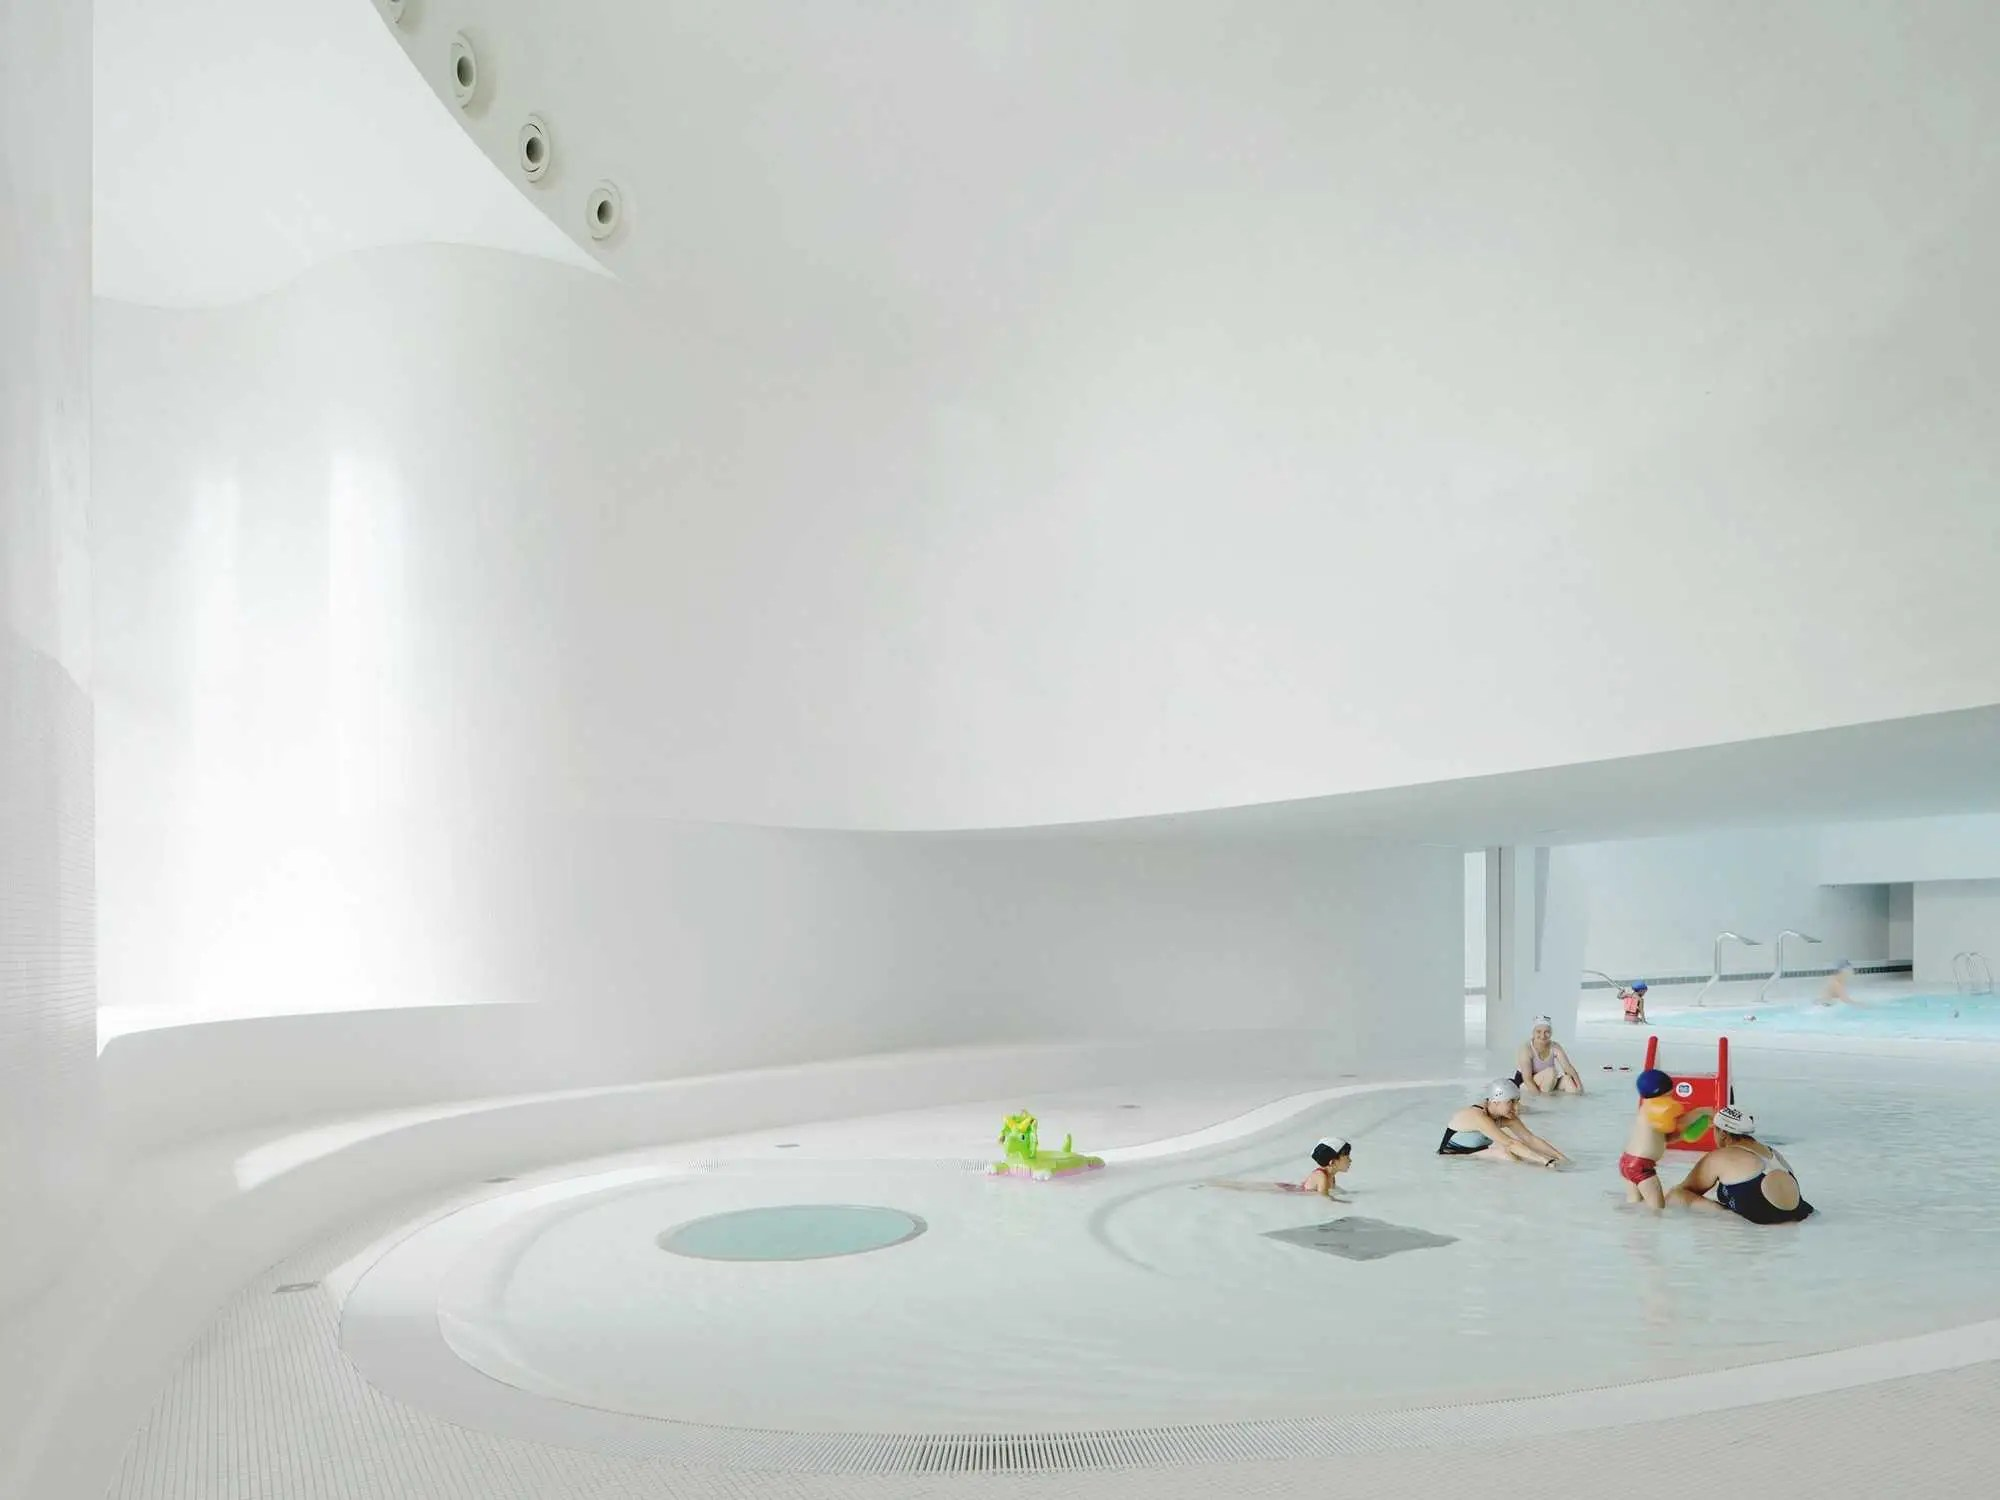 Swimming Pool Extension in Bagneux, France